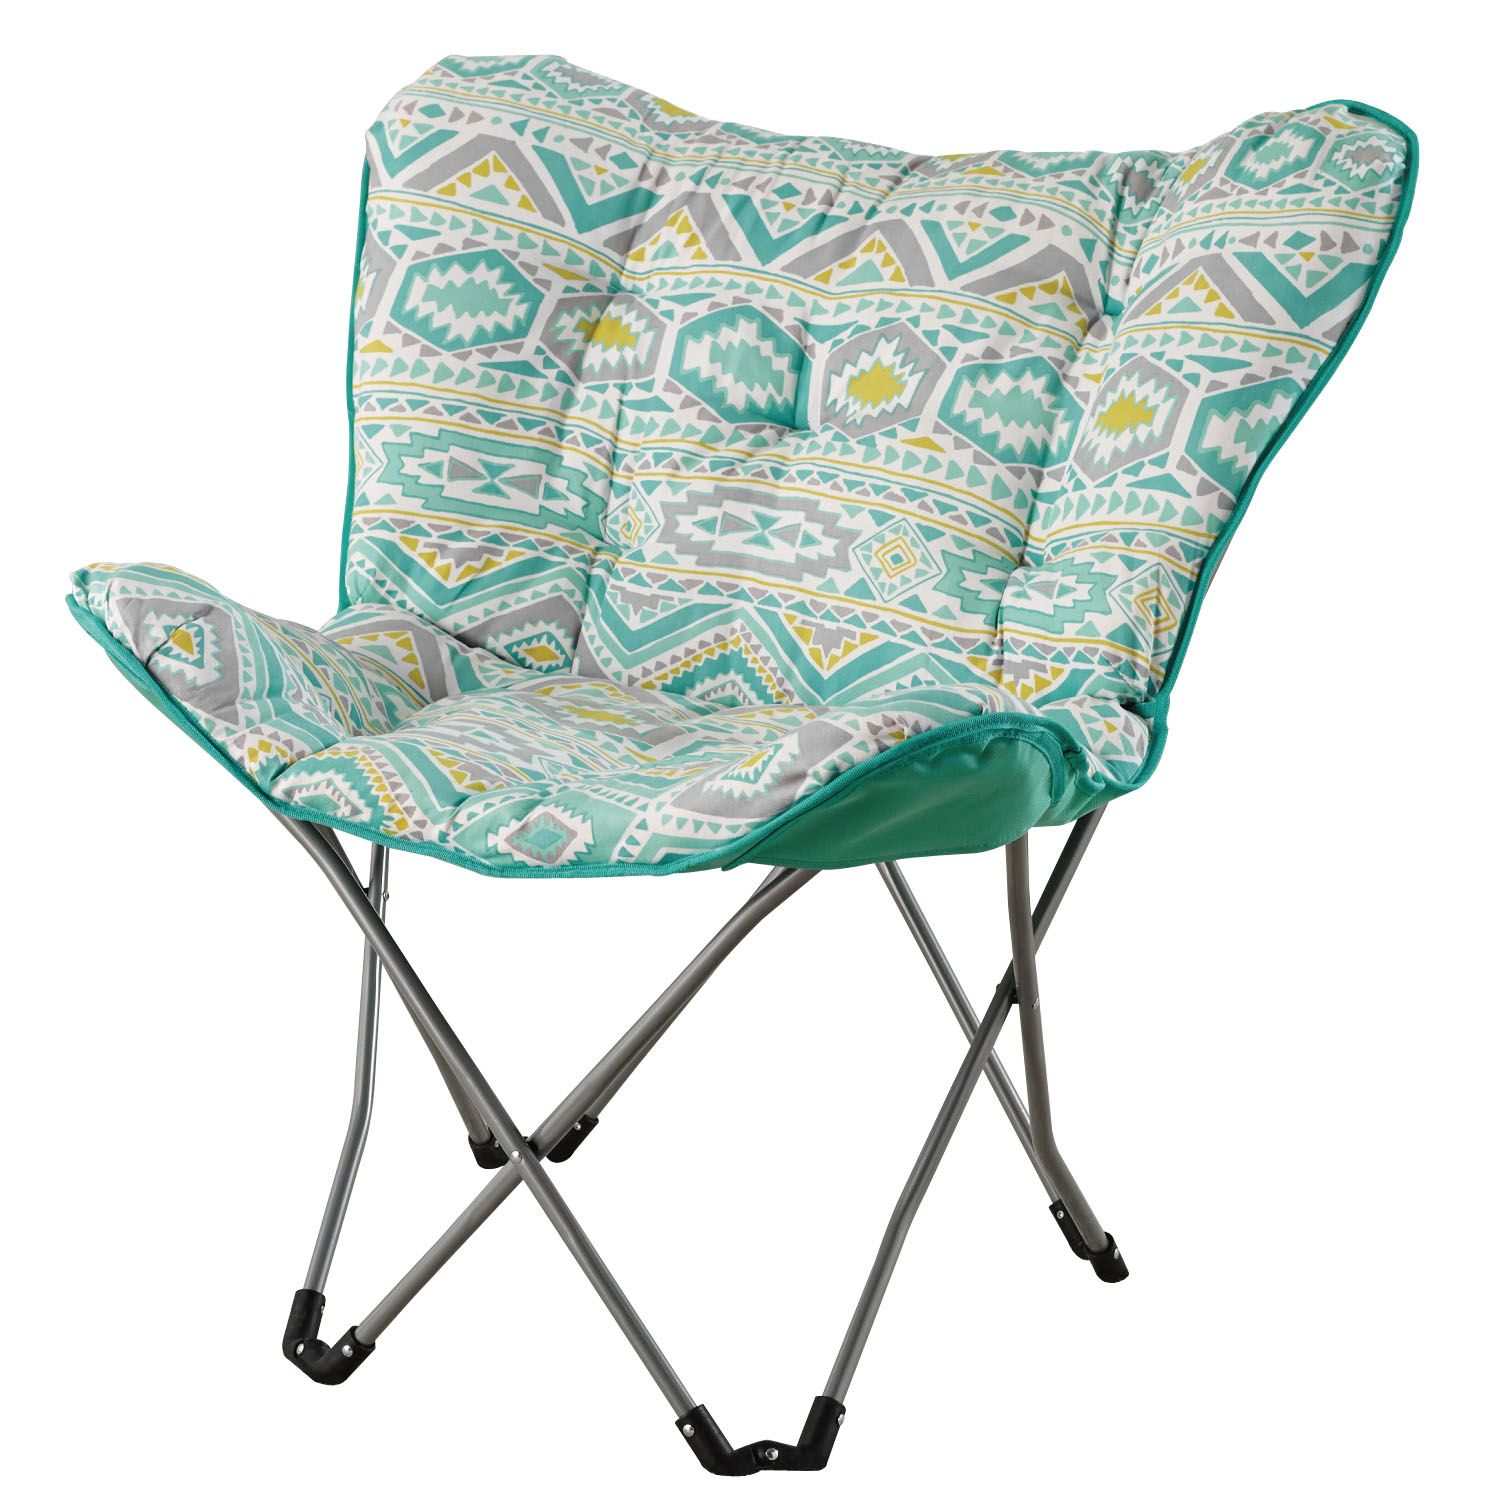 Home Butterfly chair, Swivel dining chairs, Wooden